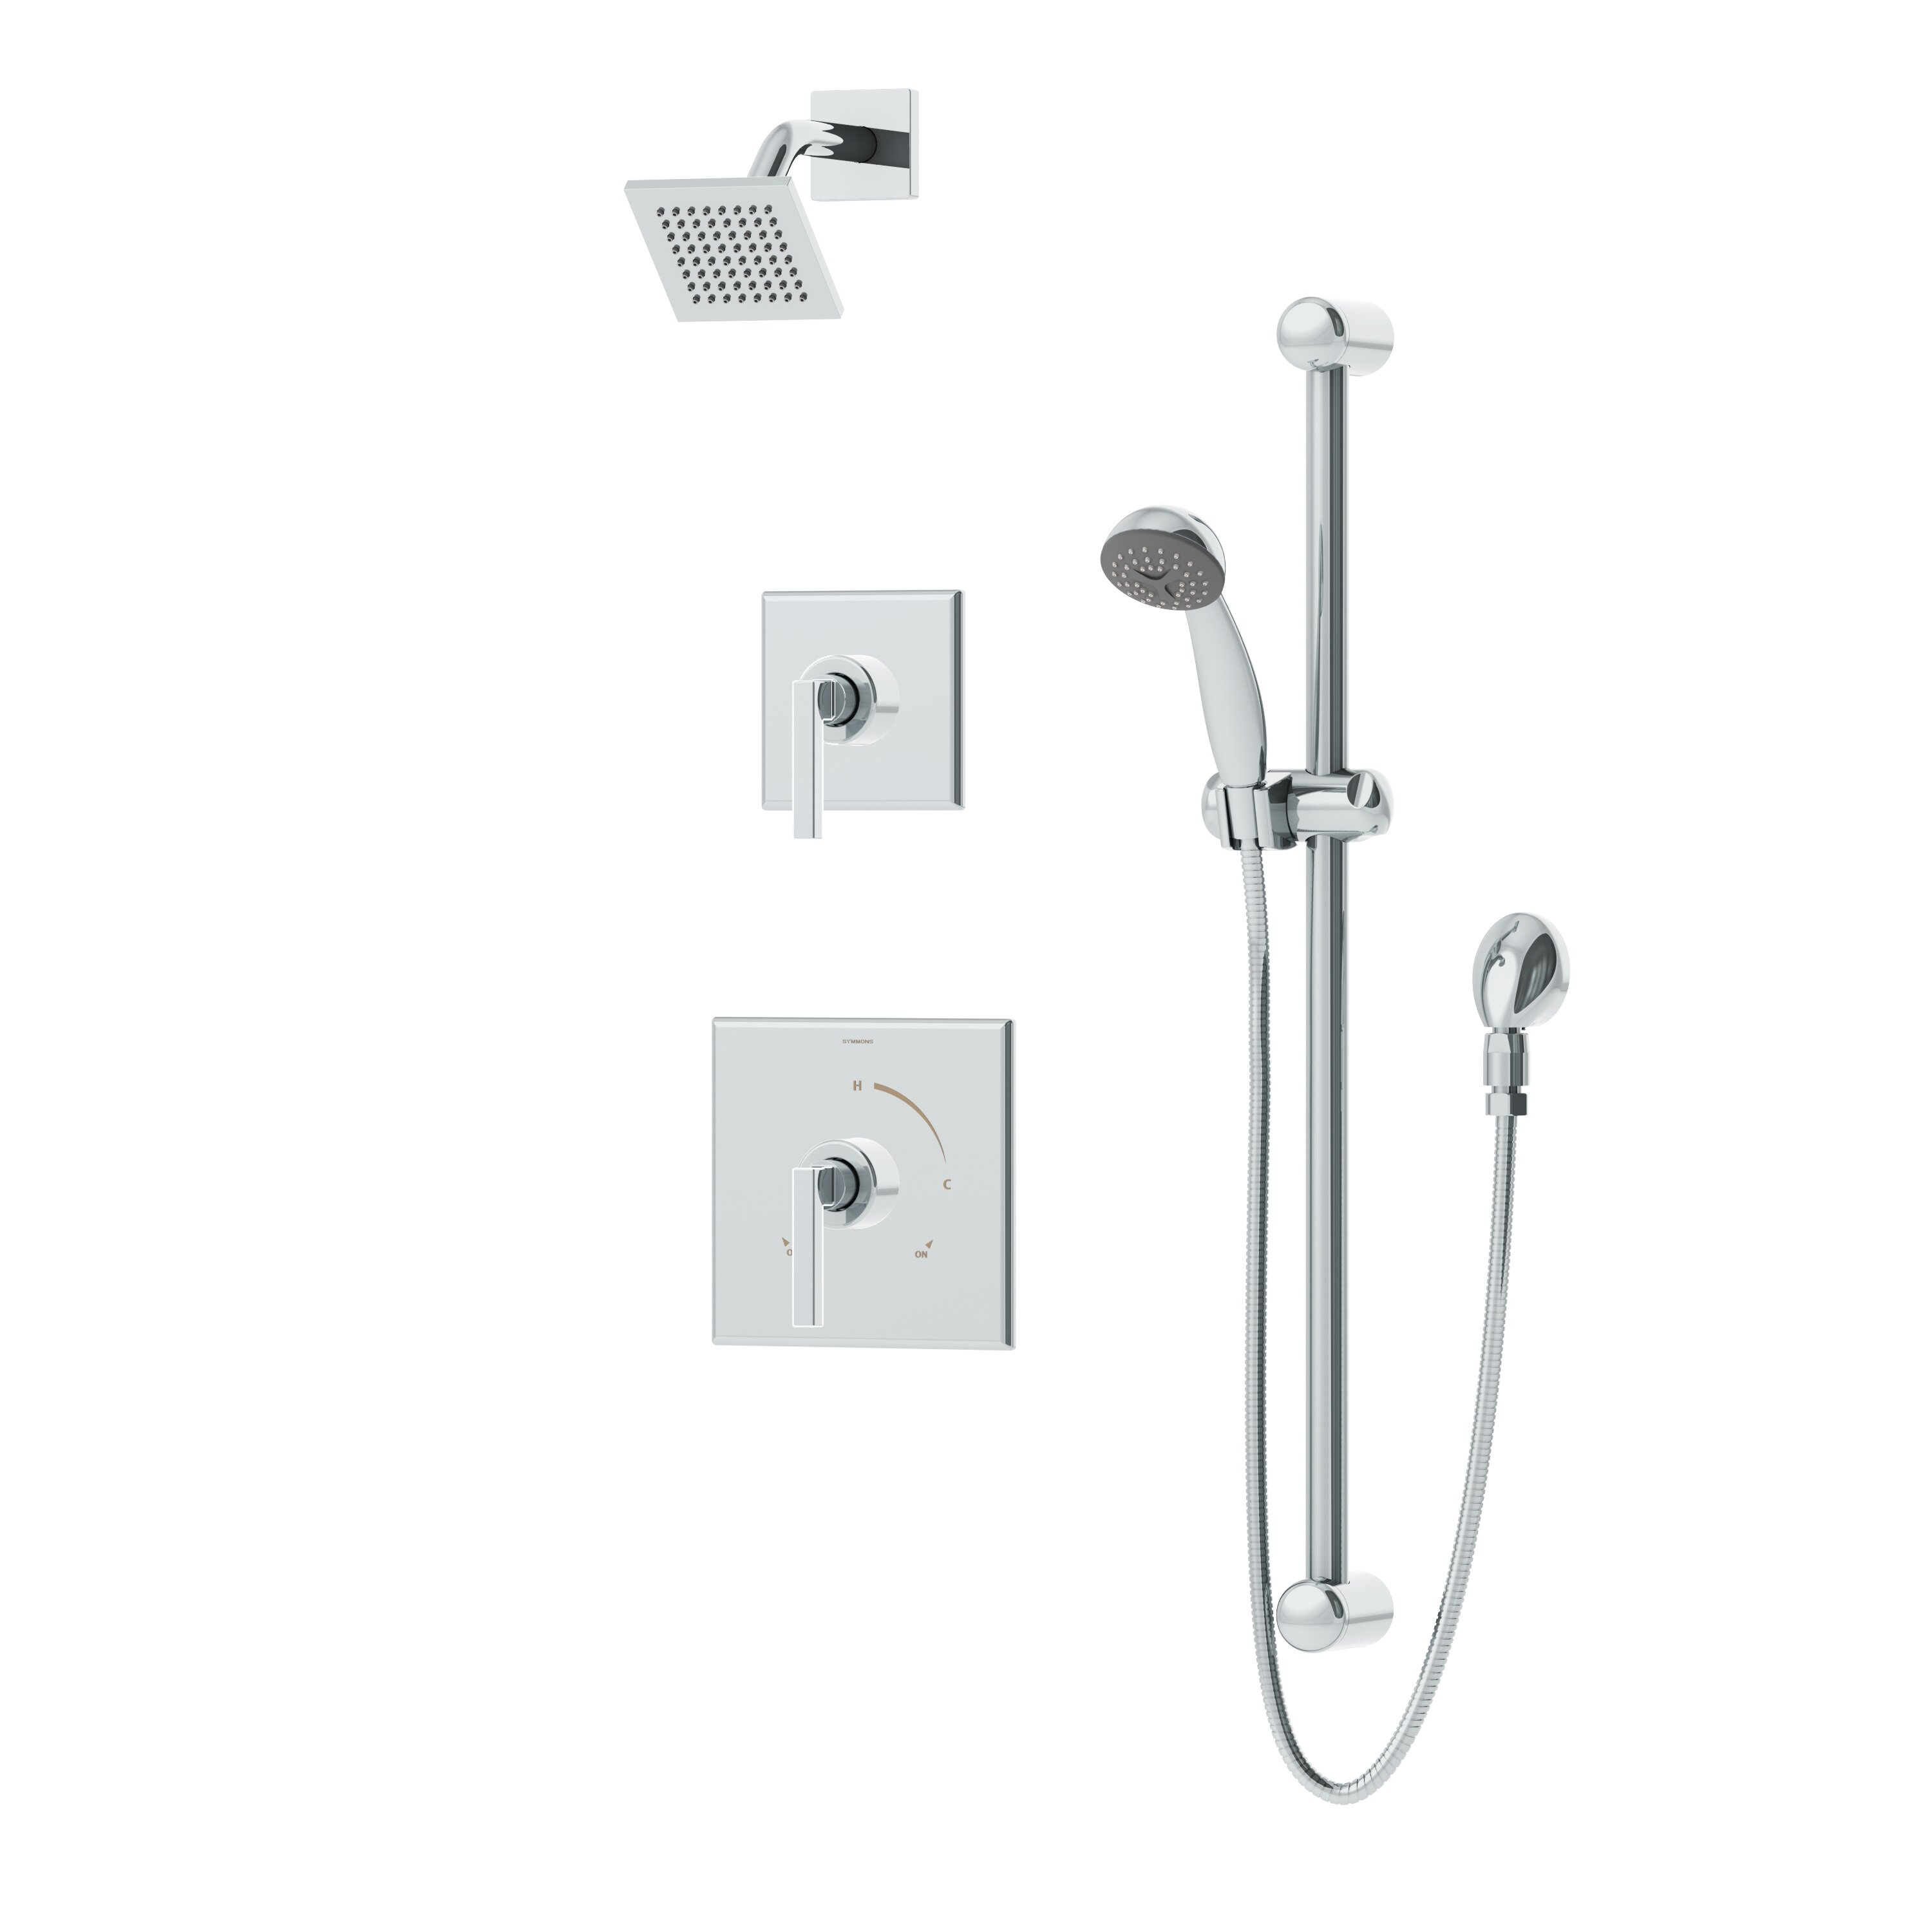 replacement handle extension three faucet knob faucets moen problems valve only shower concept with image valvemoen trim awesome one cartridge two full size of sofa kit assemblyeplacement